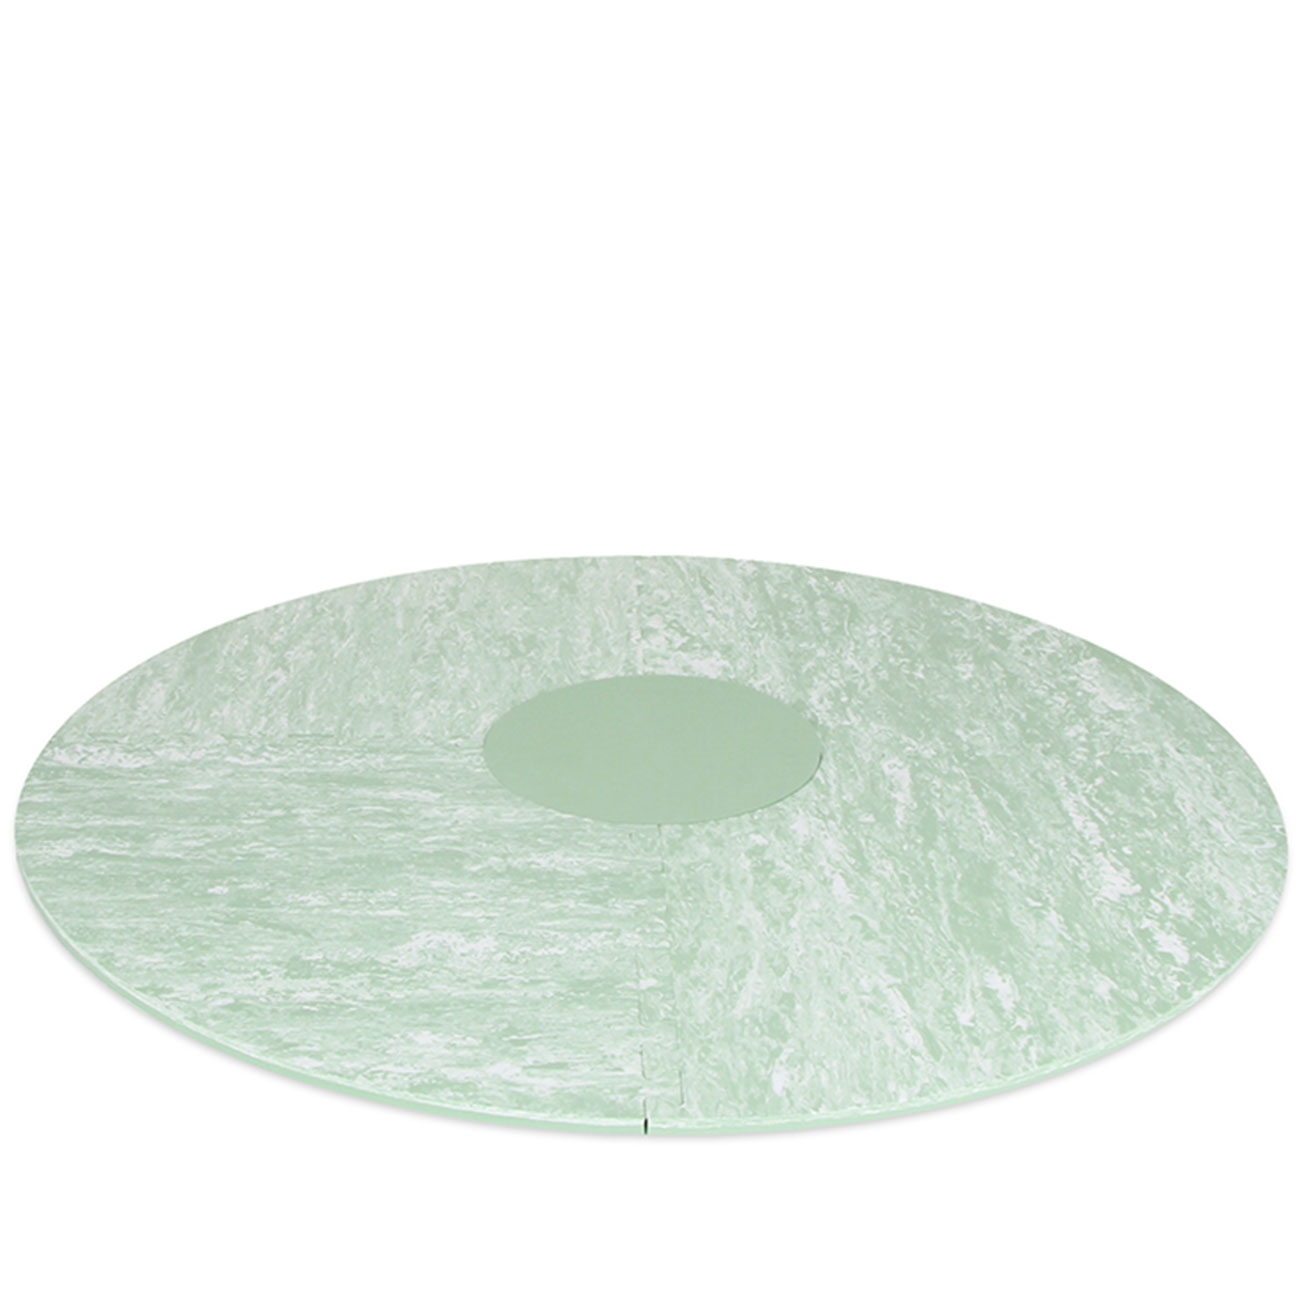 bobles-round-floor-legegulv-light-green-030-00-110-044-